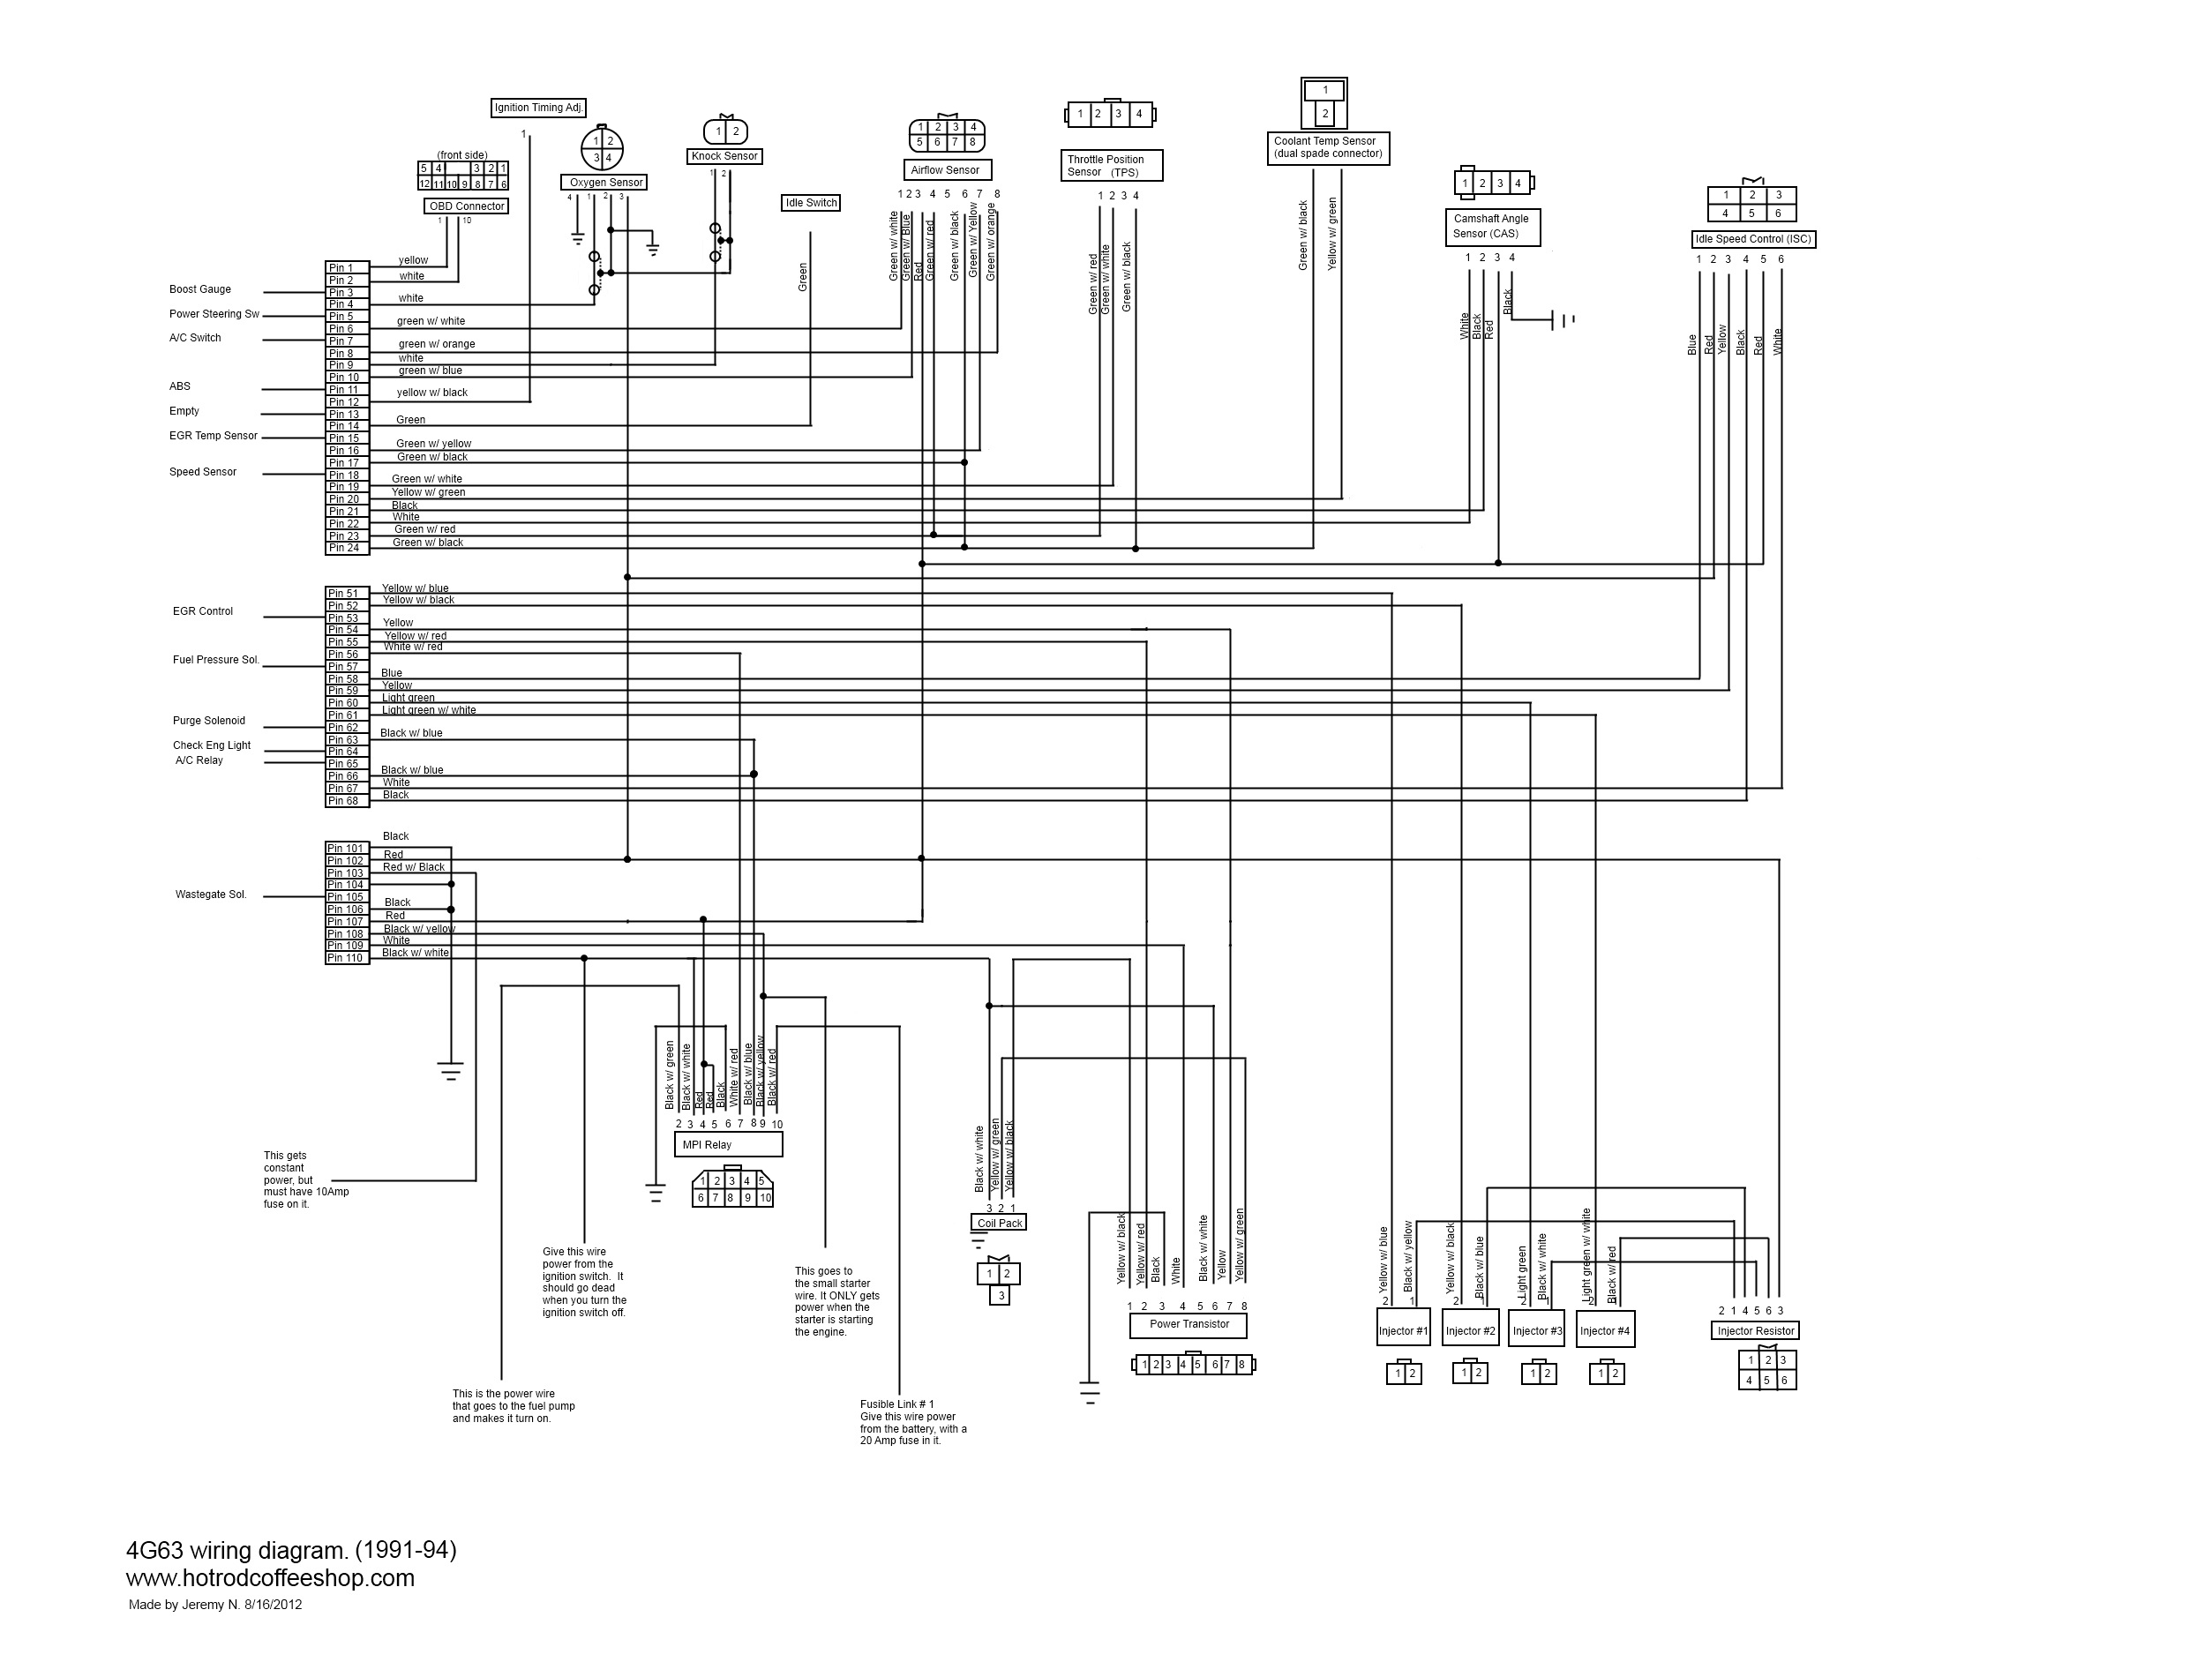 2005 F250 Front End Diagram Wedocable